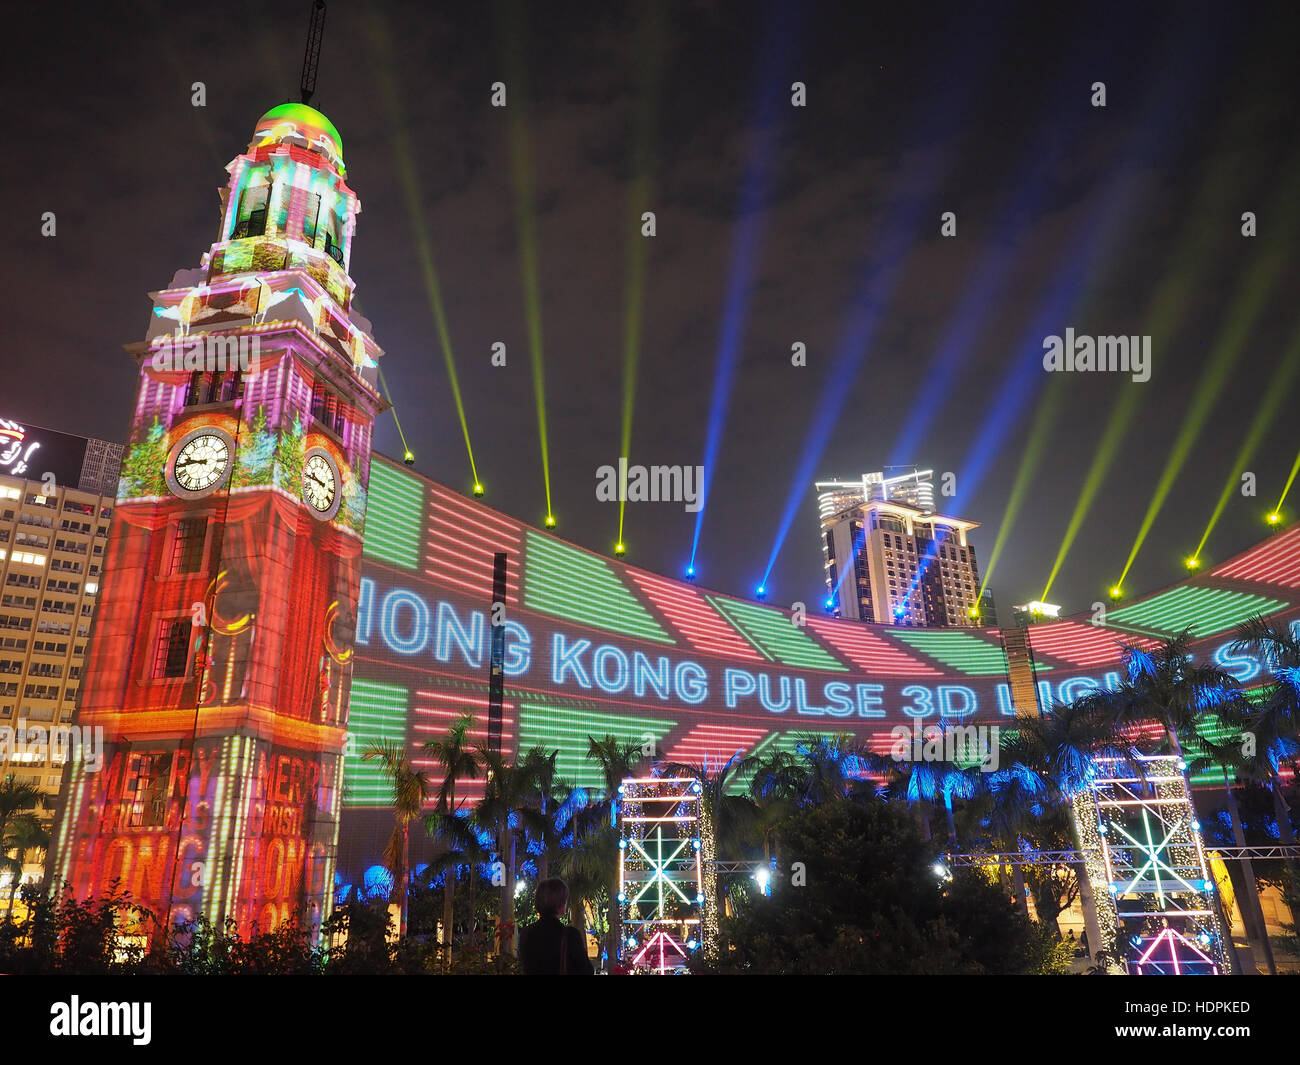 View of the Hong Kong Pulse 3D light show display at night - Stock Image